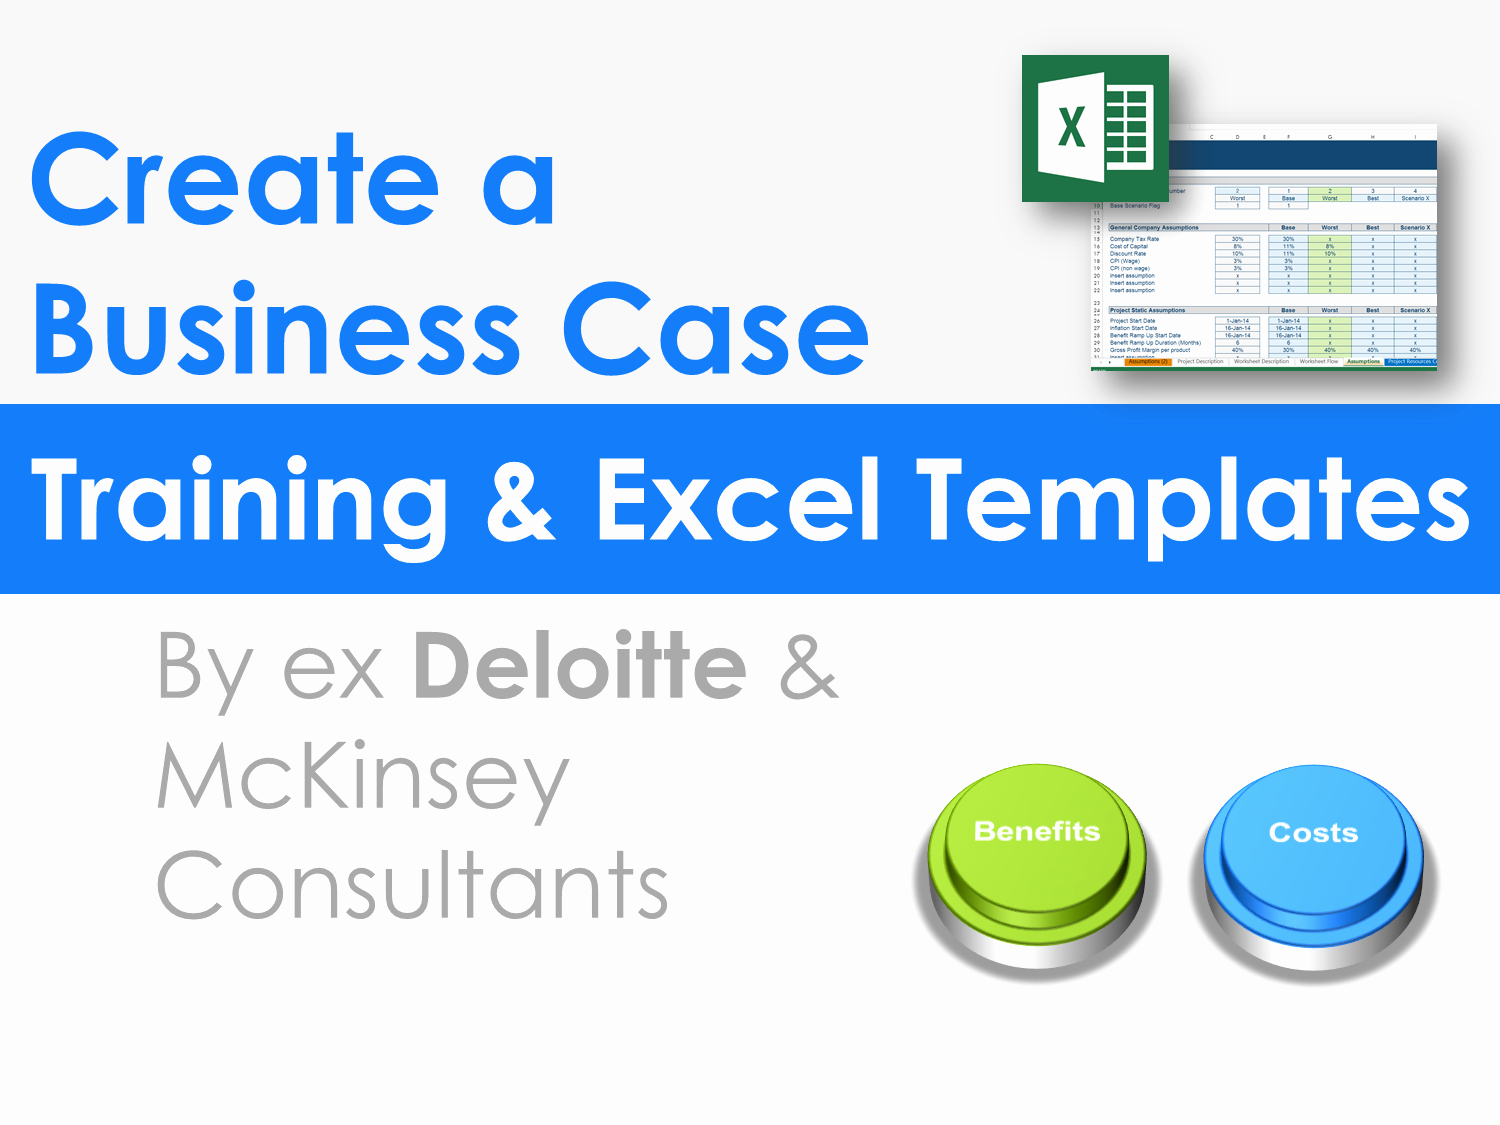 Business Case Template Ppt Awesome Download A Simple Business Case Template